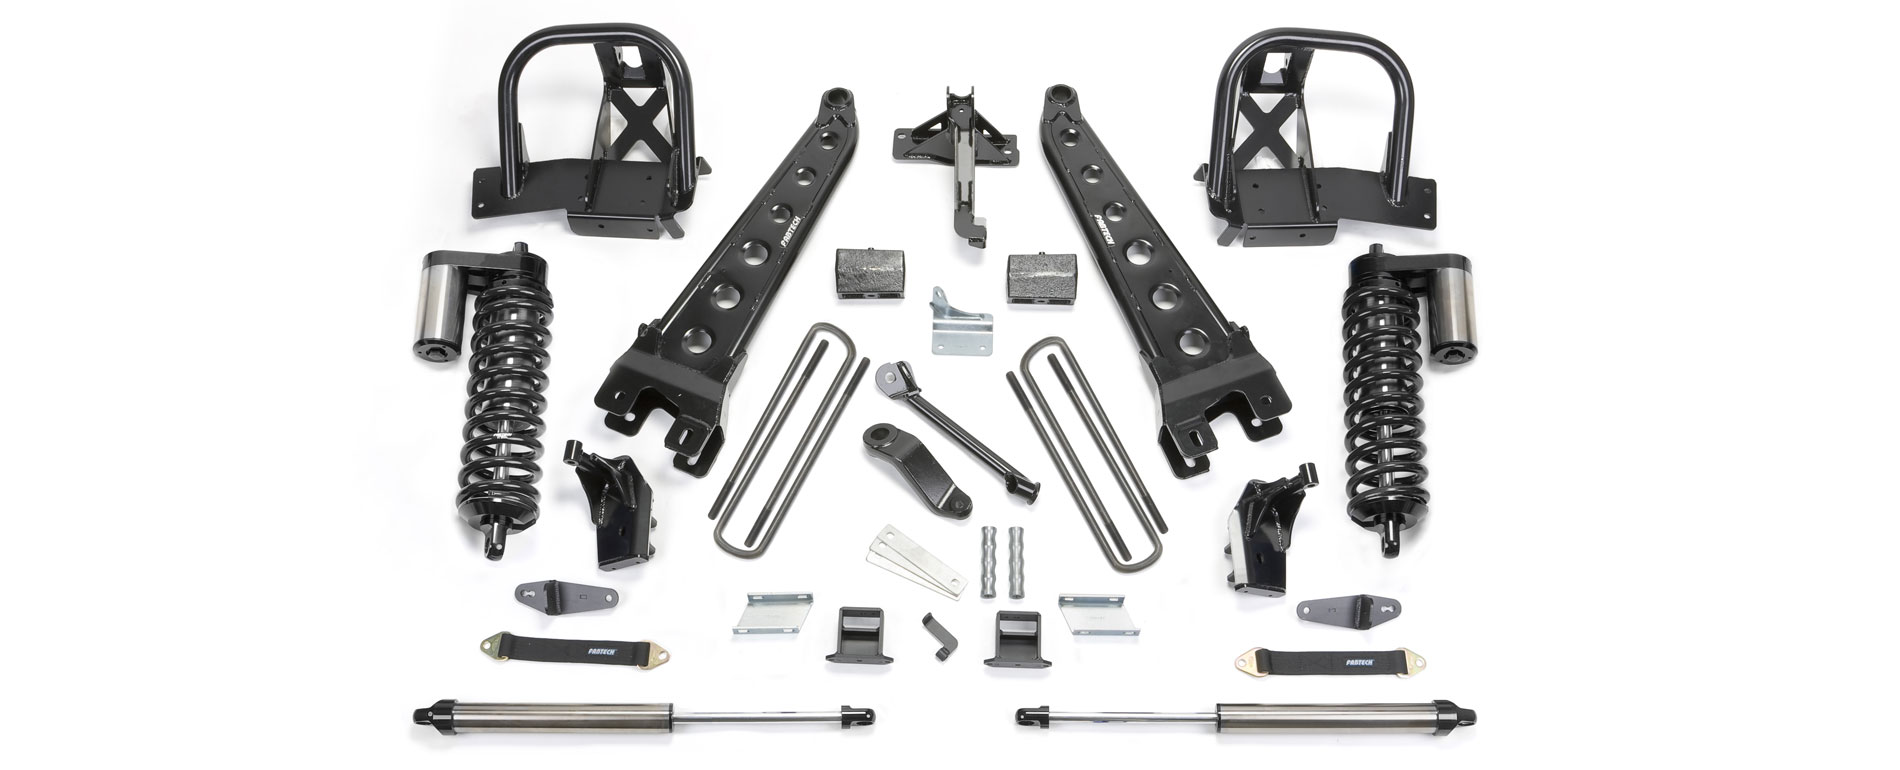 F 450 F 550 Complete Suspension Lift Systems By Fabtech